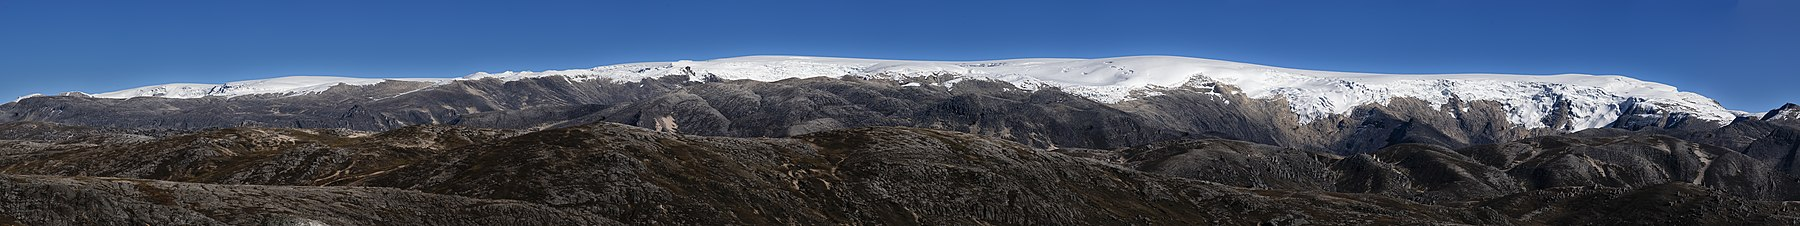 Glaciar Quelccalla.jpg